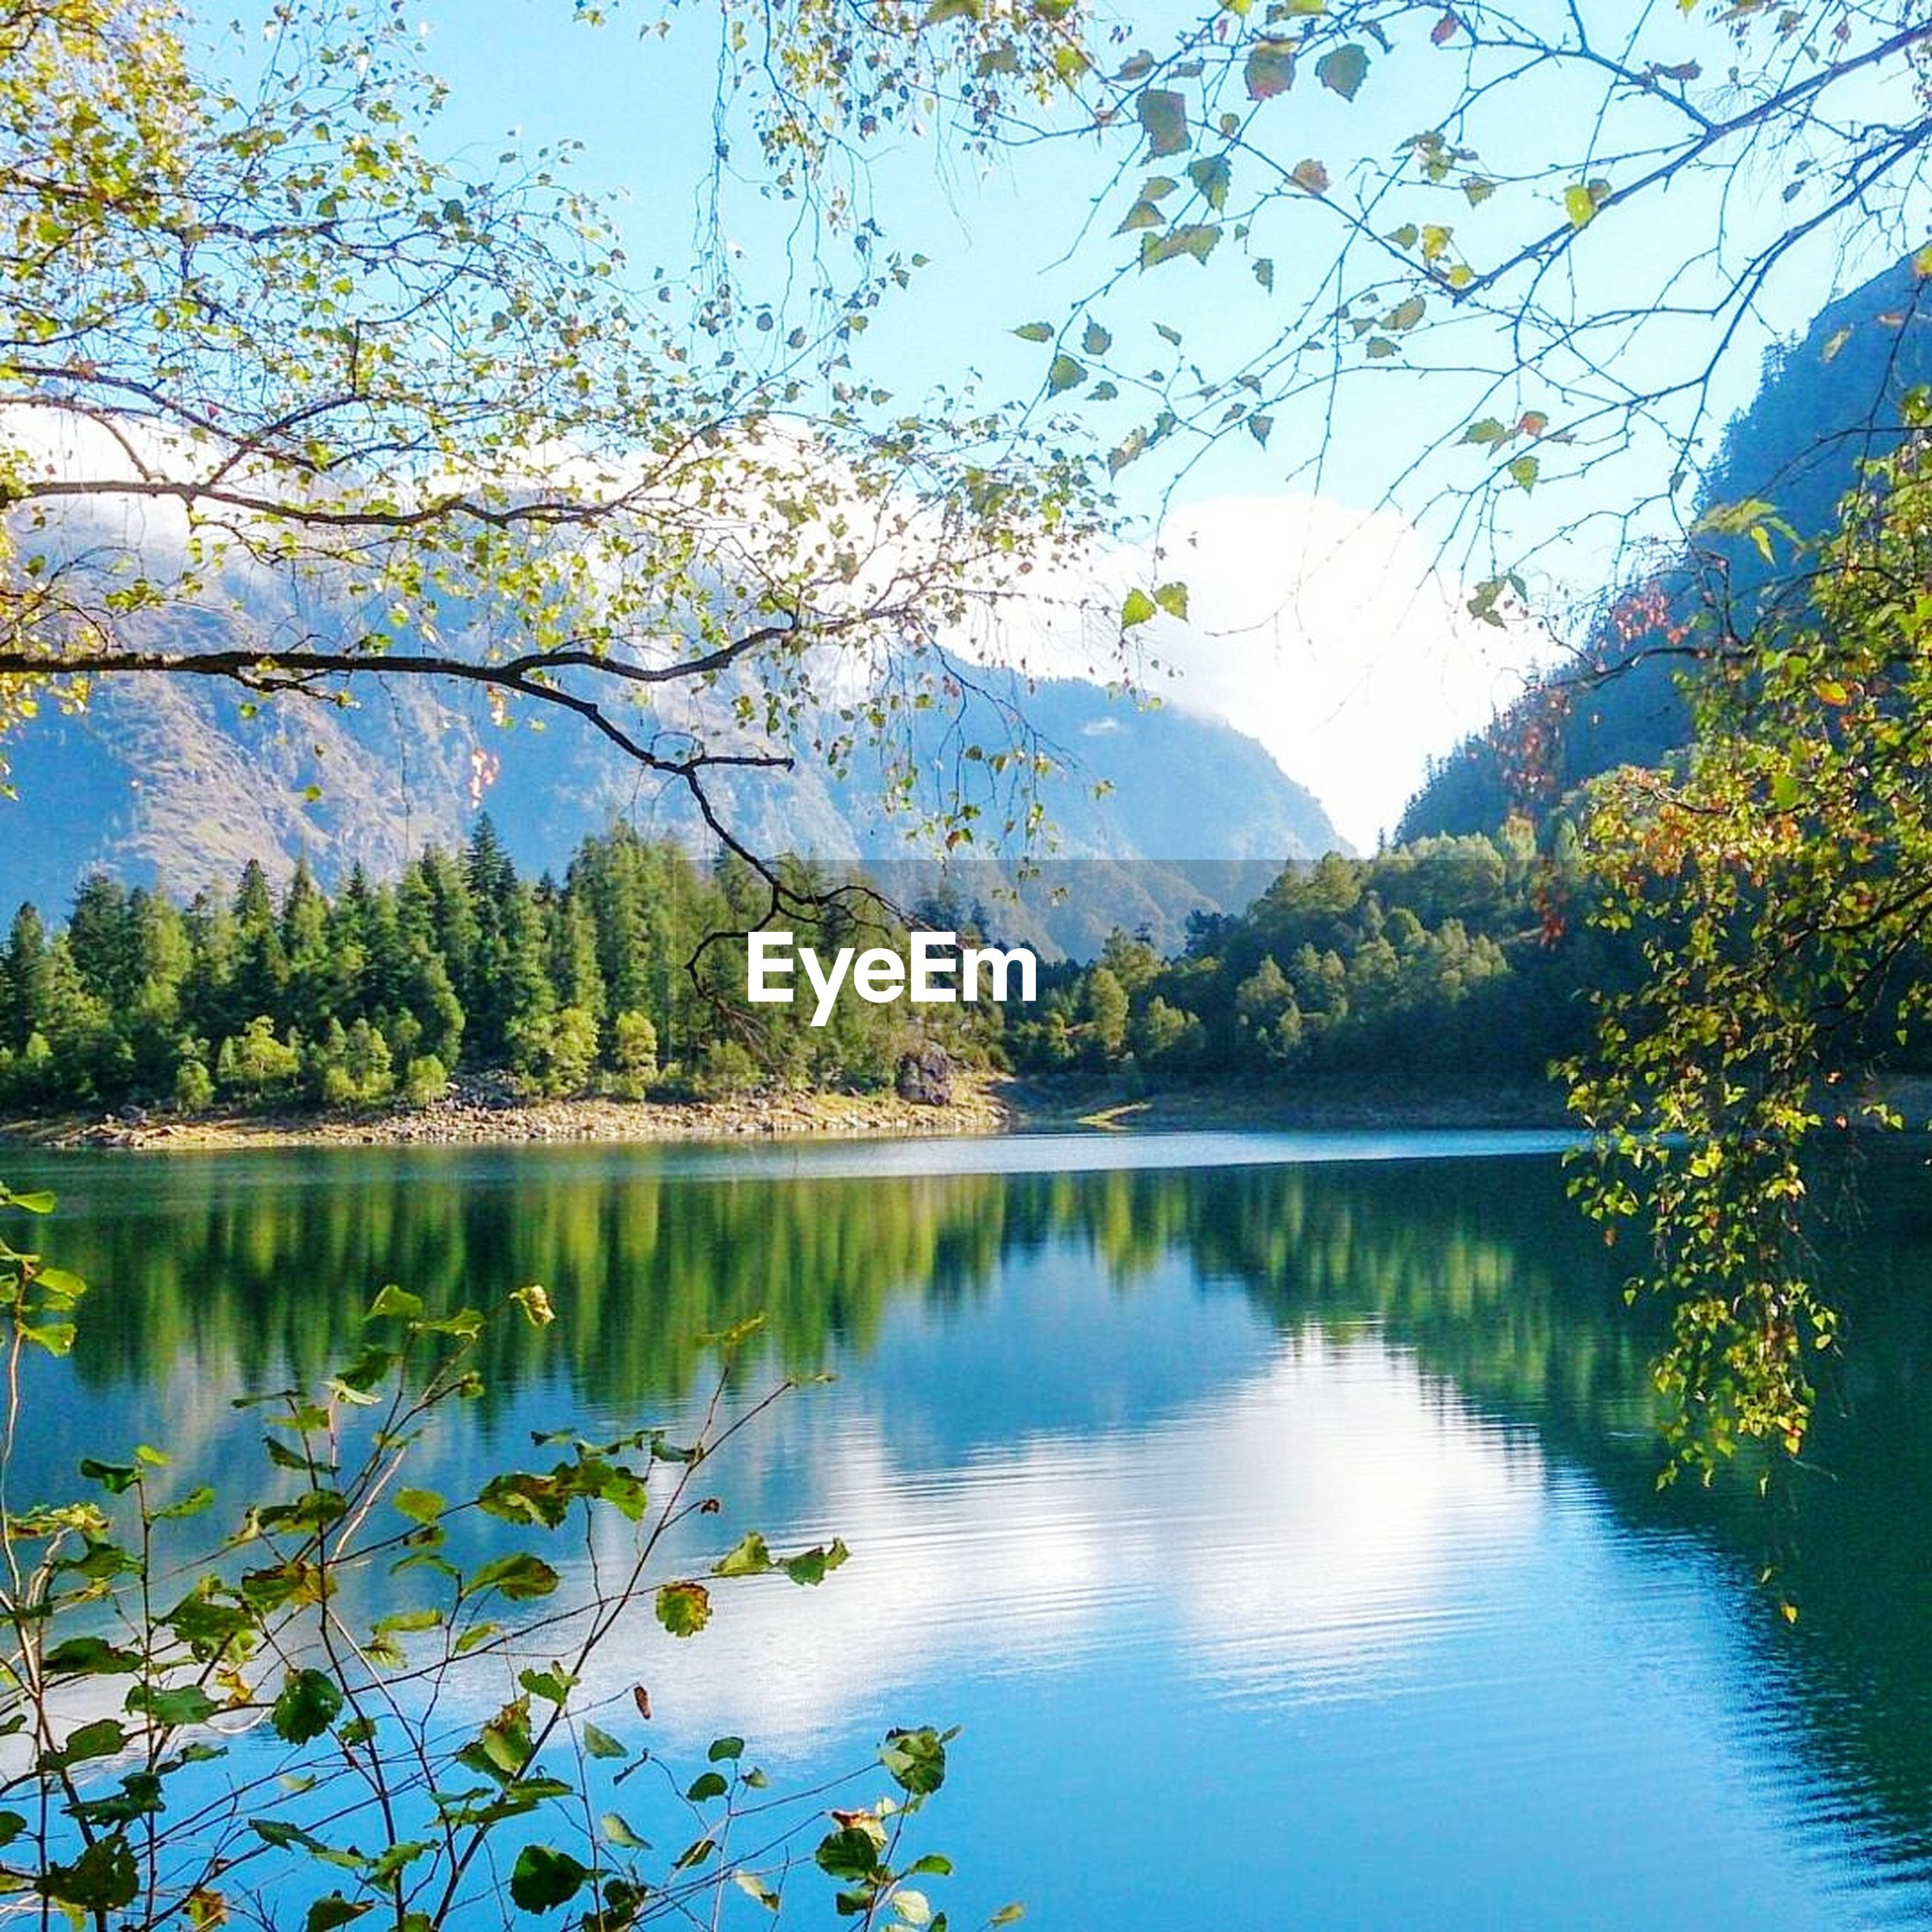 lake, tree, beauty in nature, reflection, nature, water, scenics, mountain, tranquil scene, tranquility, day, idyllic, no people, growth, outdoors, branch, sky, flower